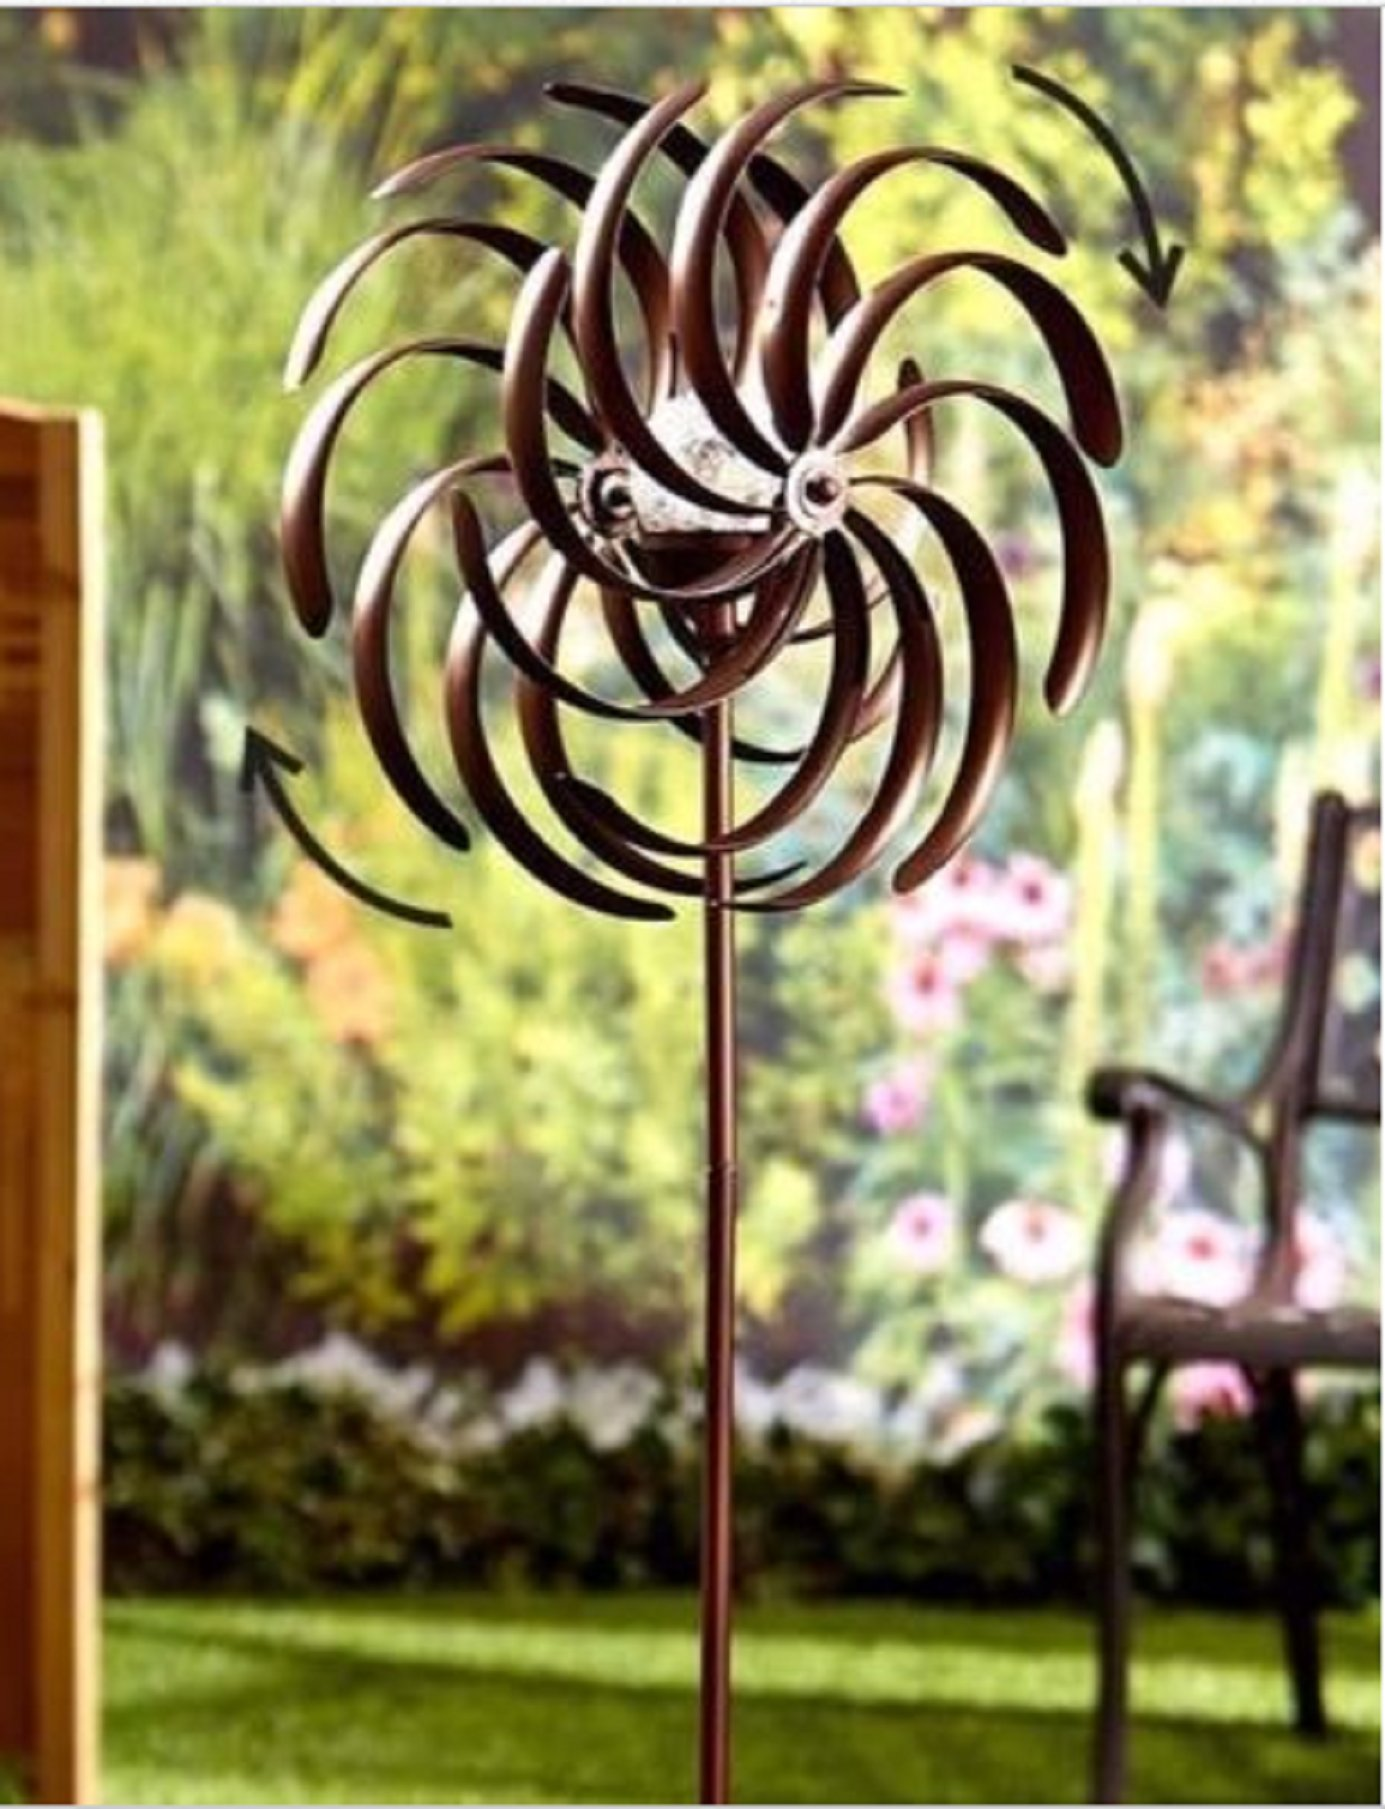 USA Premium Store Weather Resistant Double Spiral Solar Lighted Garden Wind Spinner Yard Art Decor by USA Premium Store (Image #1)